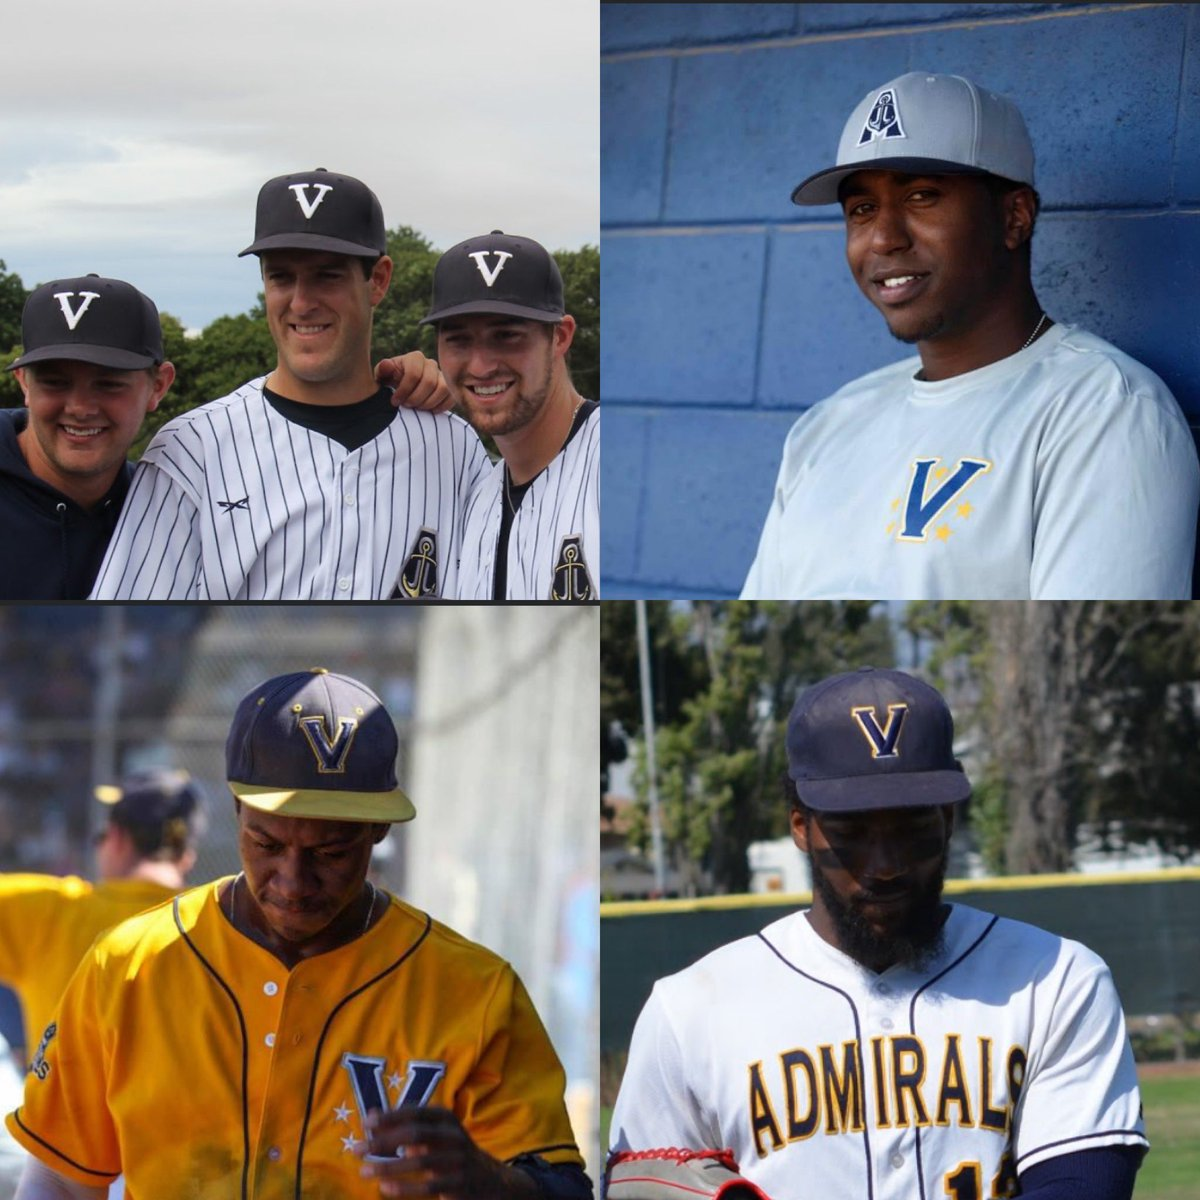 In honor of #nationalhatday2021 we thought we'd show you all our field hats through the years. Which one is/was your favorite? #nationalhatday #hatday #hat #hats #baseballhat #baseball #vallejo #vallejoca #vallejocalifornia #probaseball #indybaseball #indyball